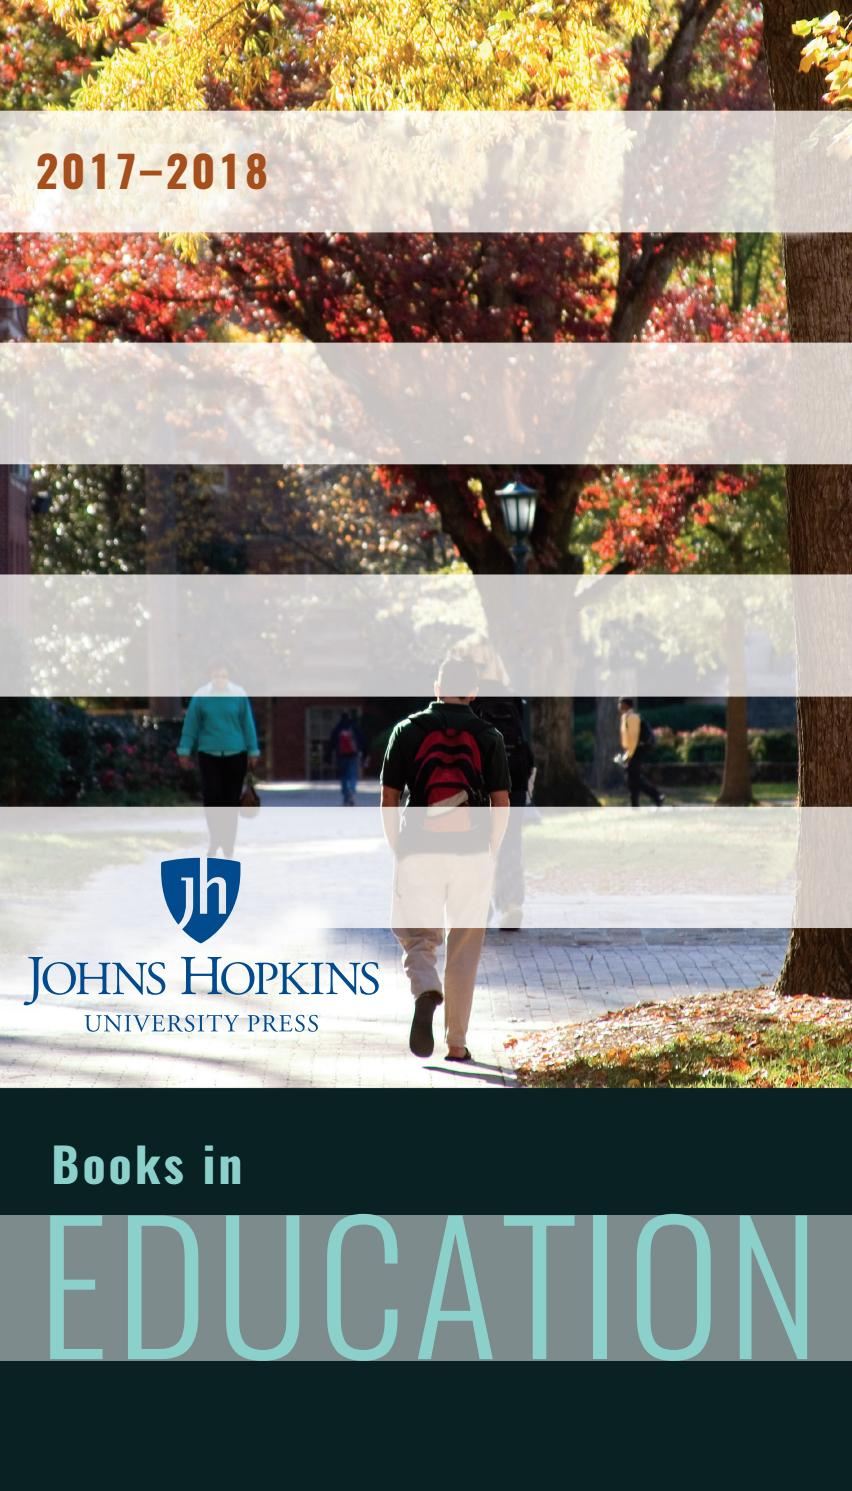 Jhup books in education 2017 2018 by susan ventura issuu fandeluxe Image collections